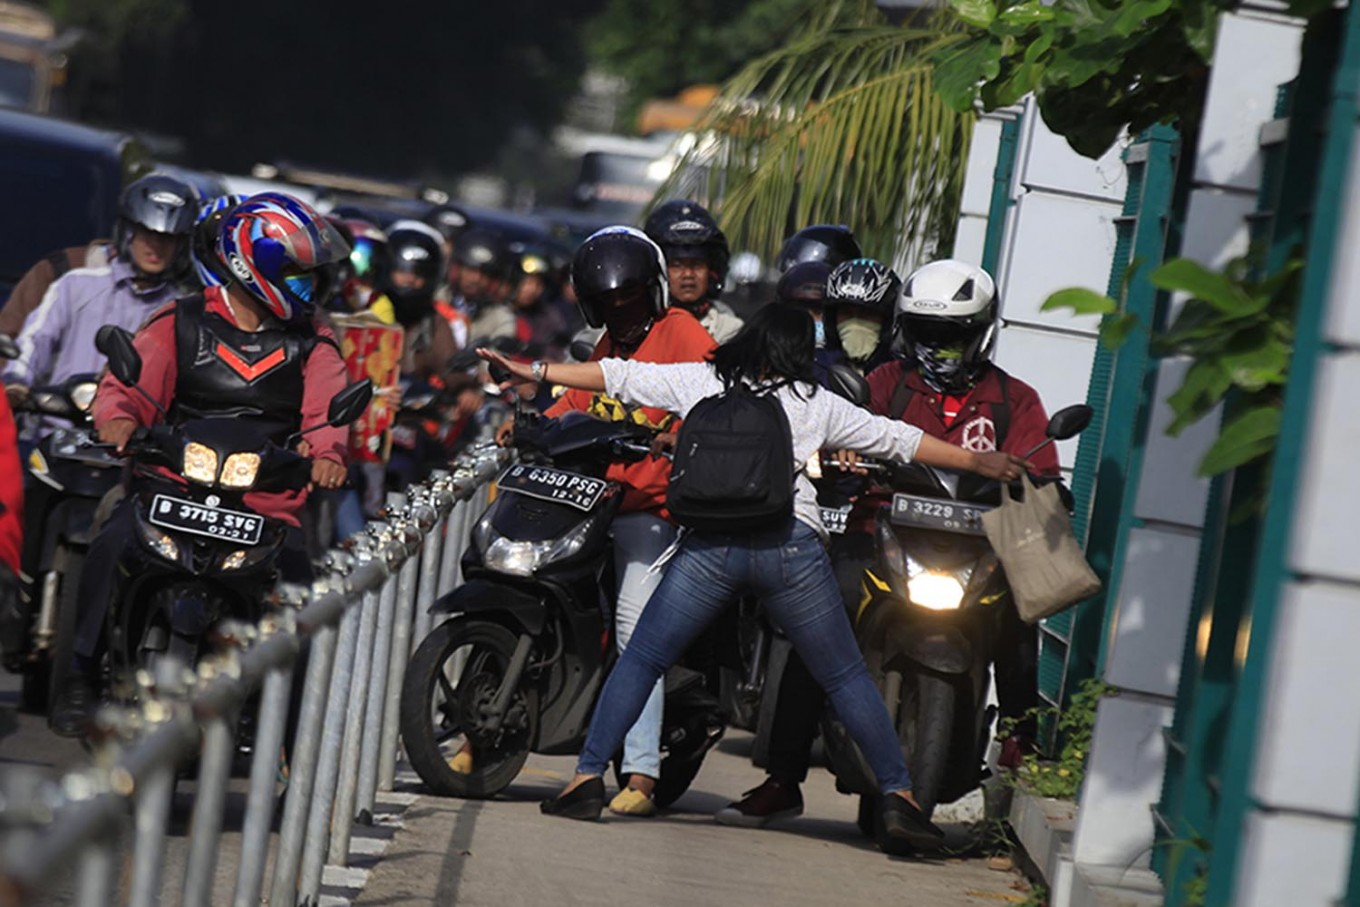 Bold move: Hadang pemotor nakal (Blocking naughty motorcyclists) by Dhoni Setiawan